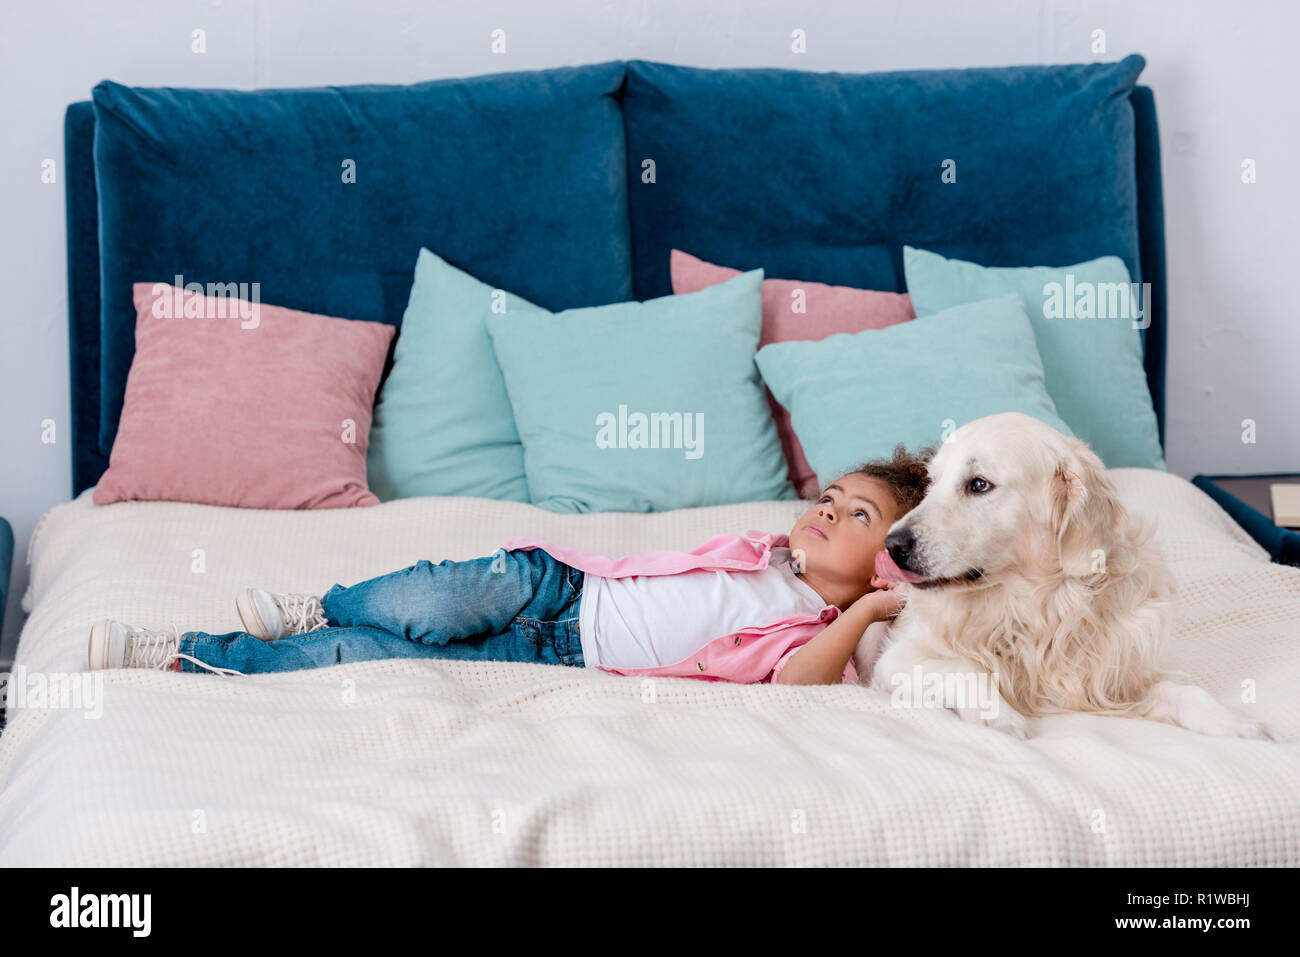 Adorable little african american kid in pink jacket lying on bed with dog while looking away - Stock Image